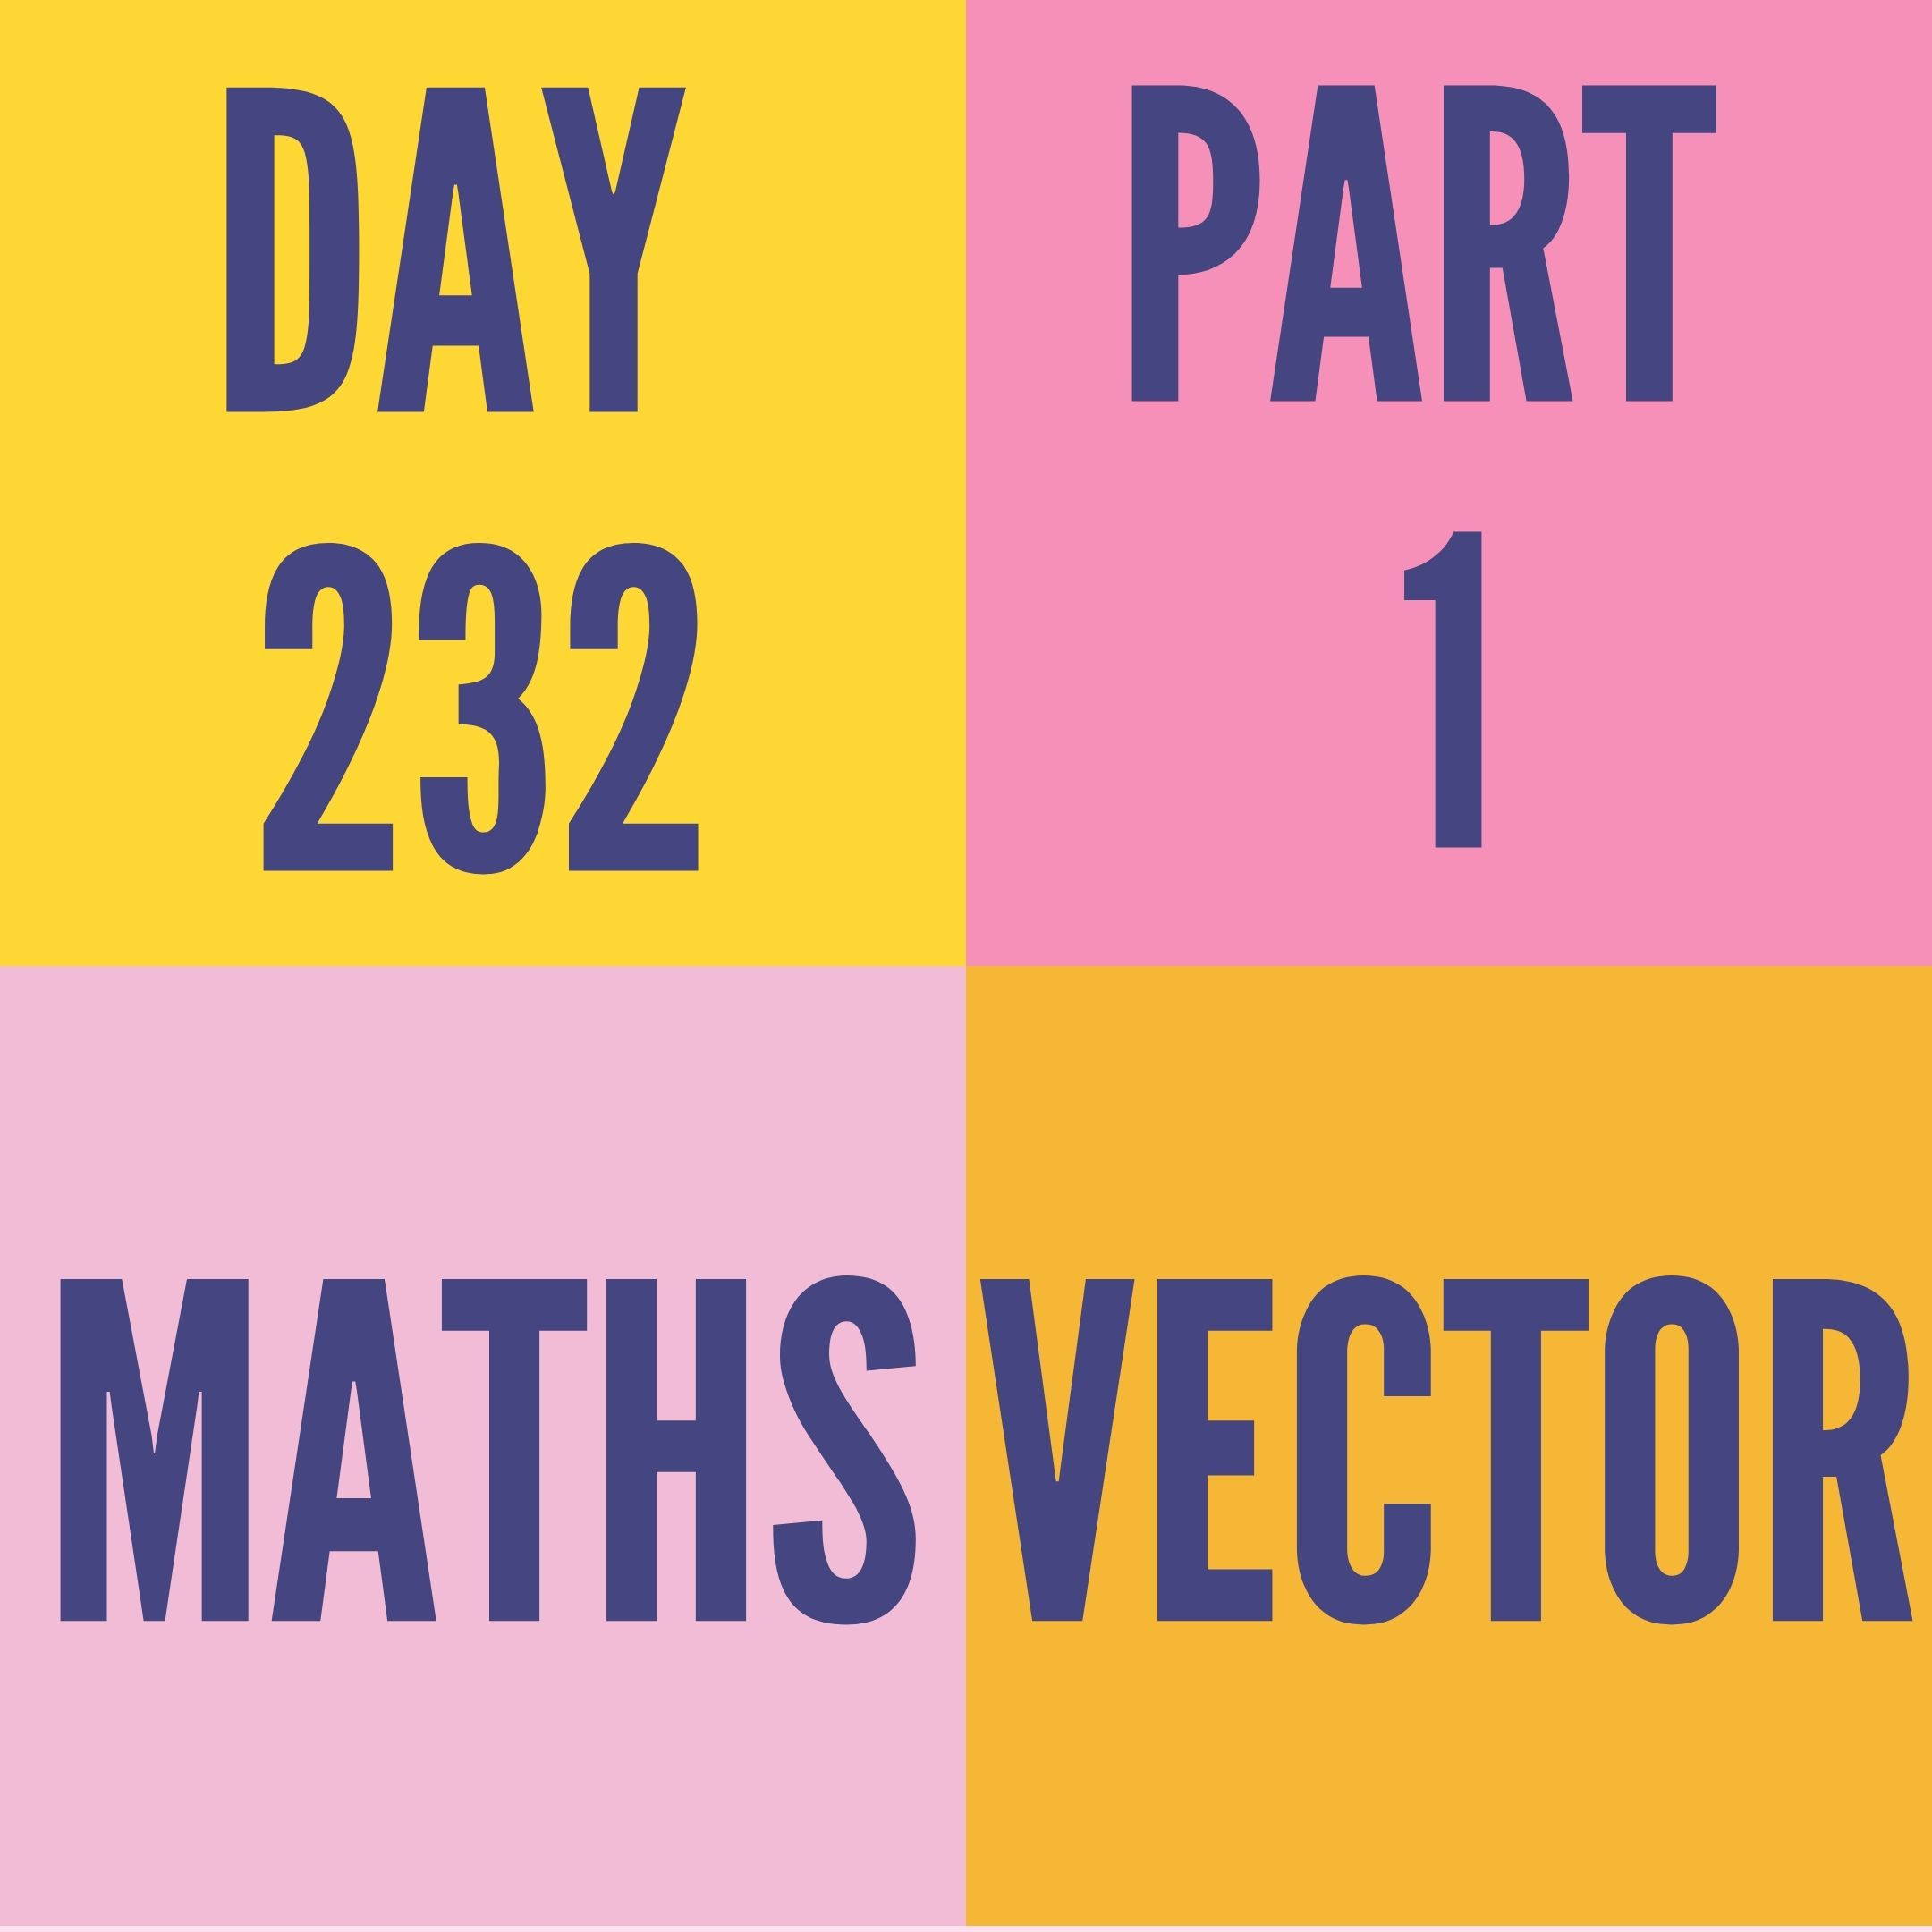 DAY-232 PART-1 VECTOR